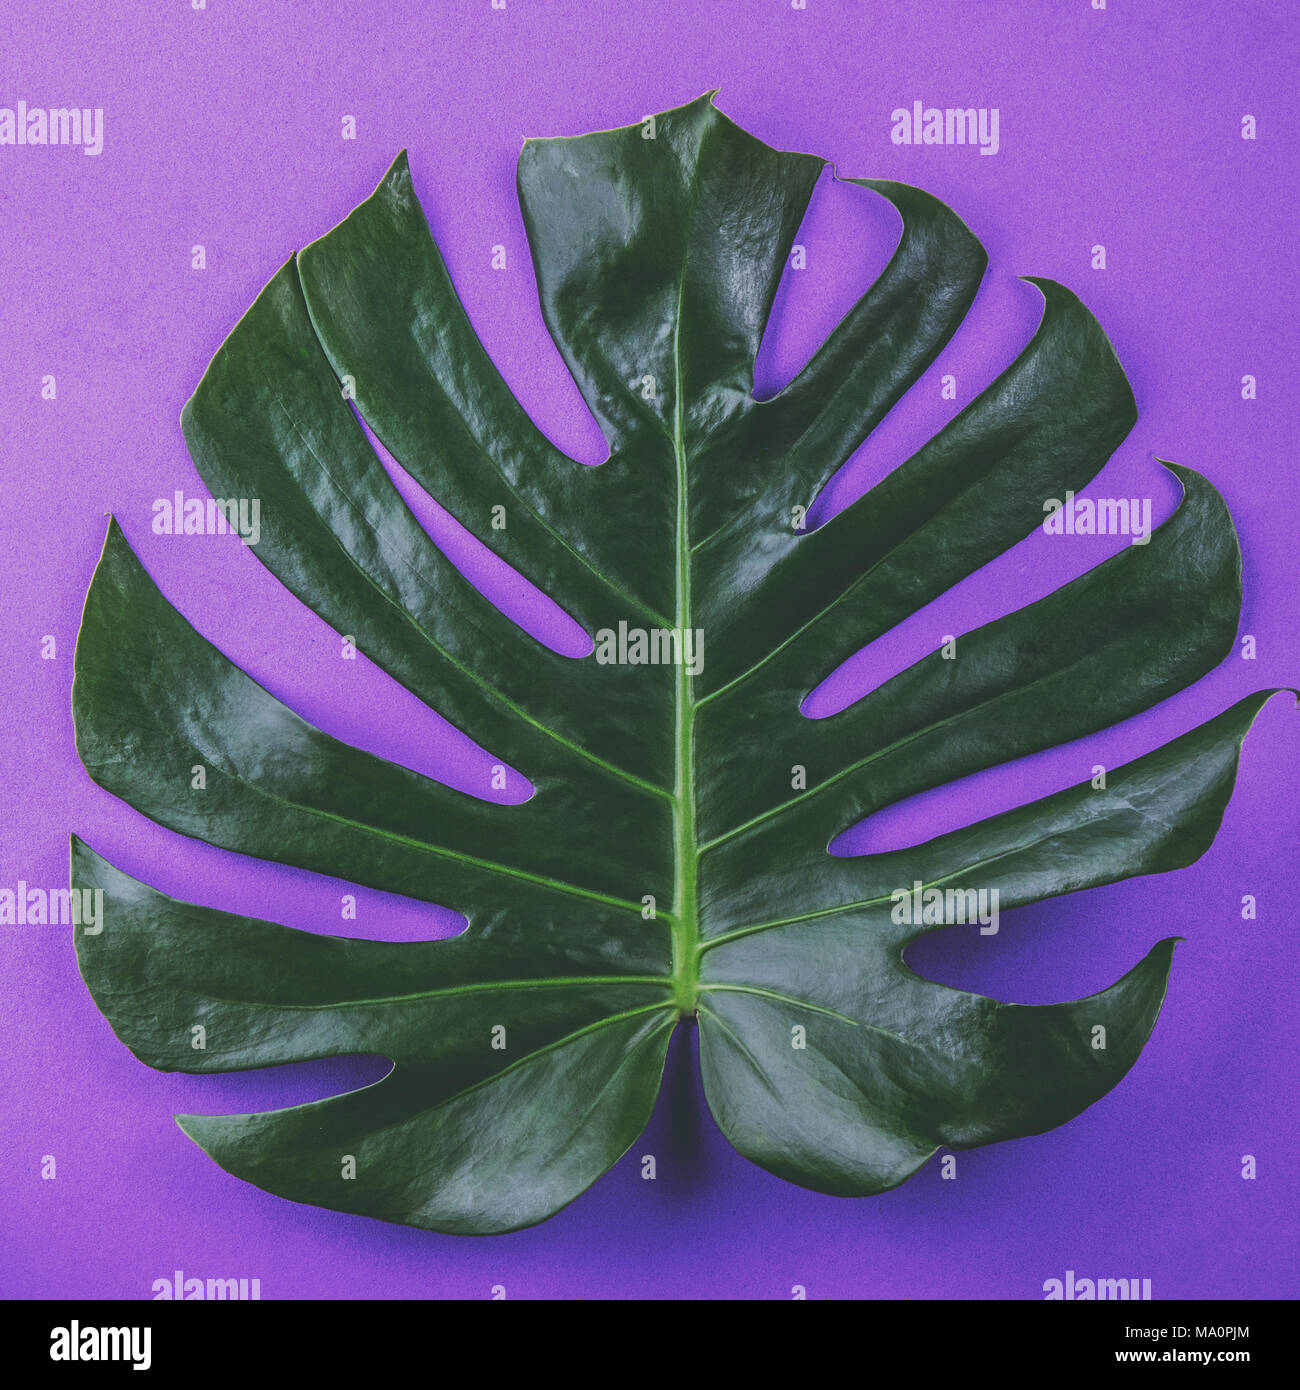 Tropical leave Monstera on purple background. Flat lay, top view. - Stock Image